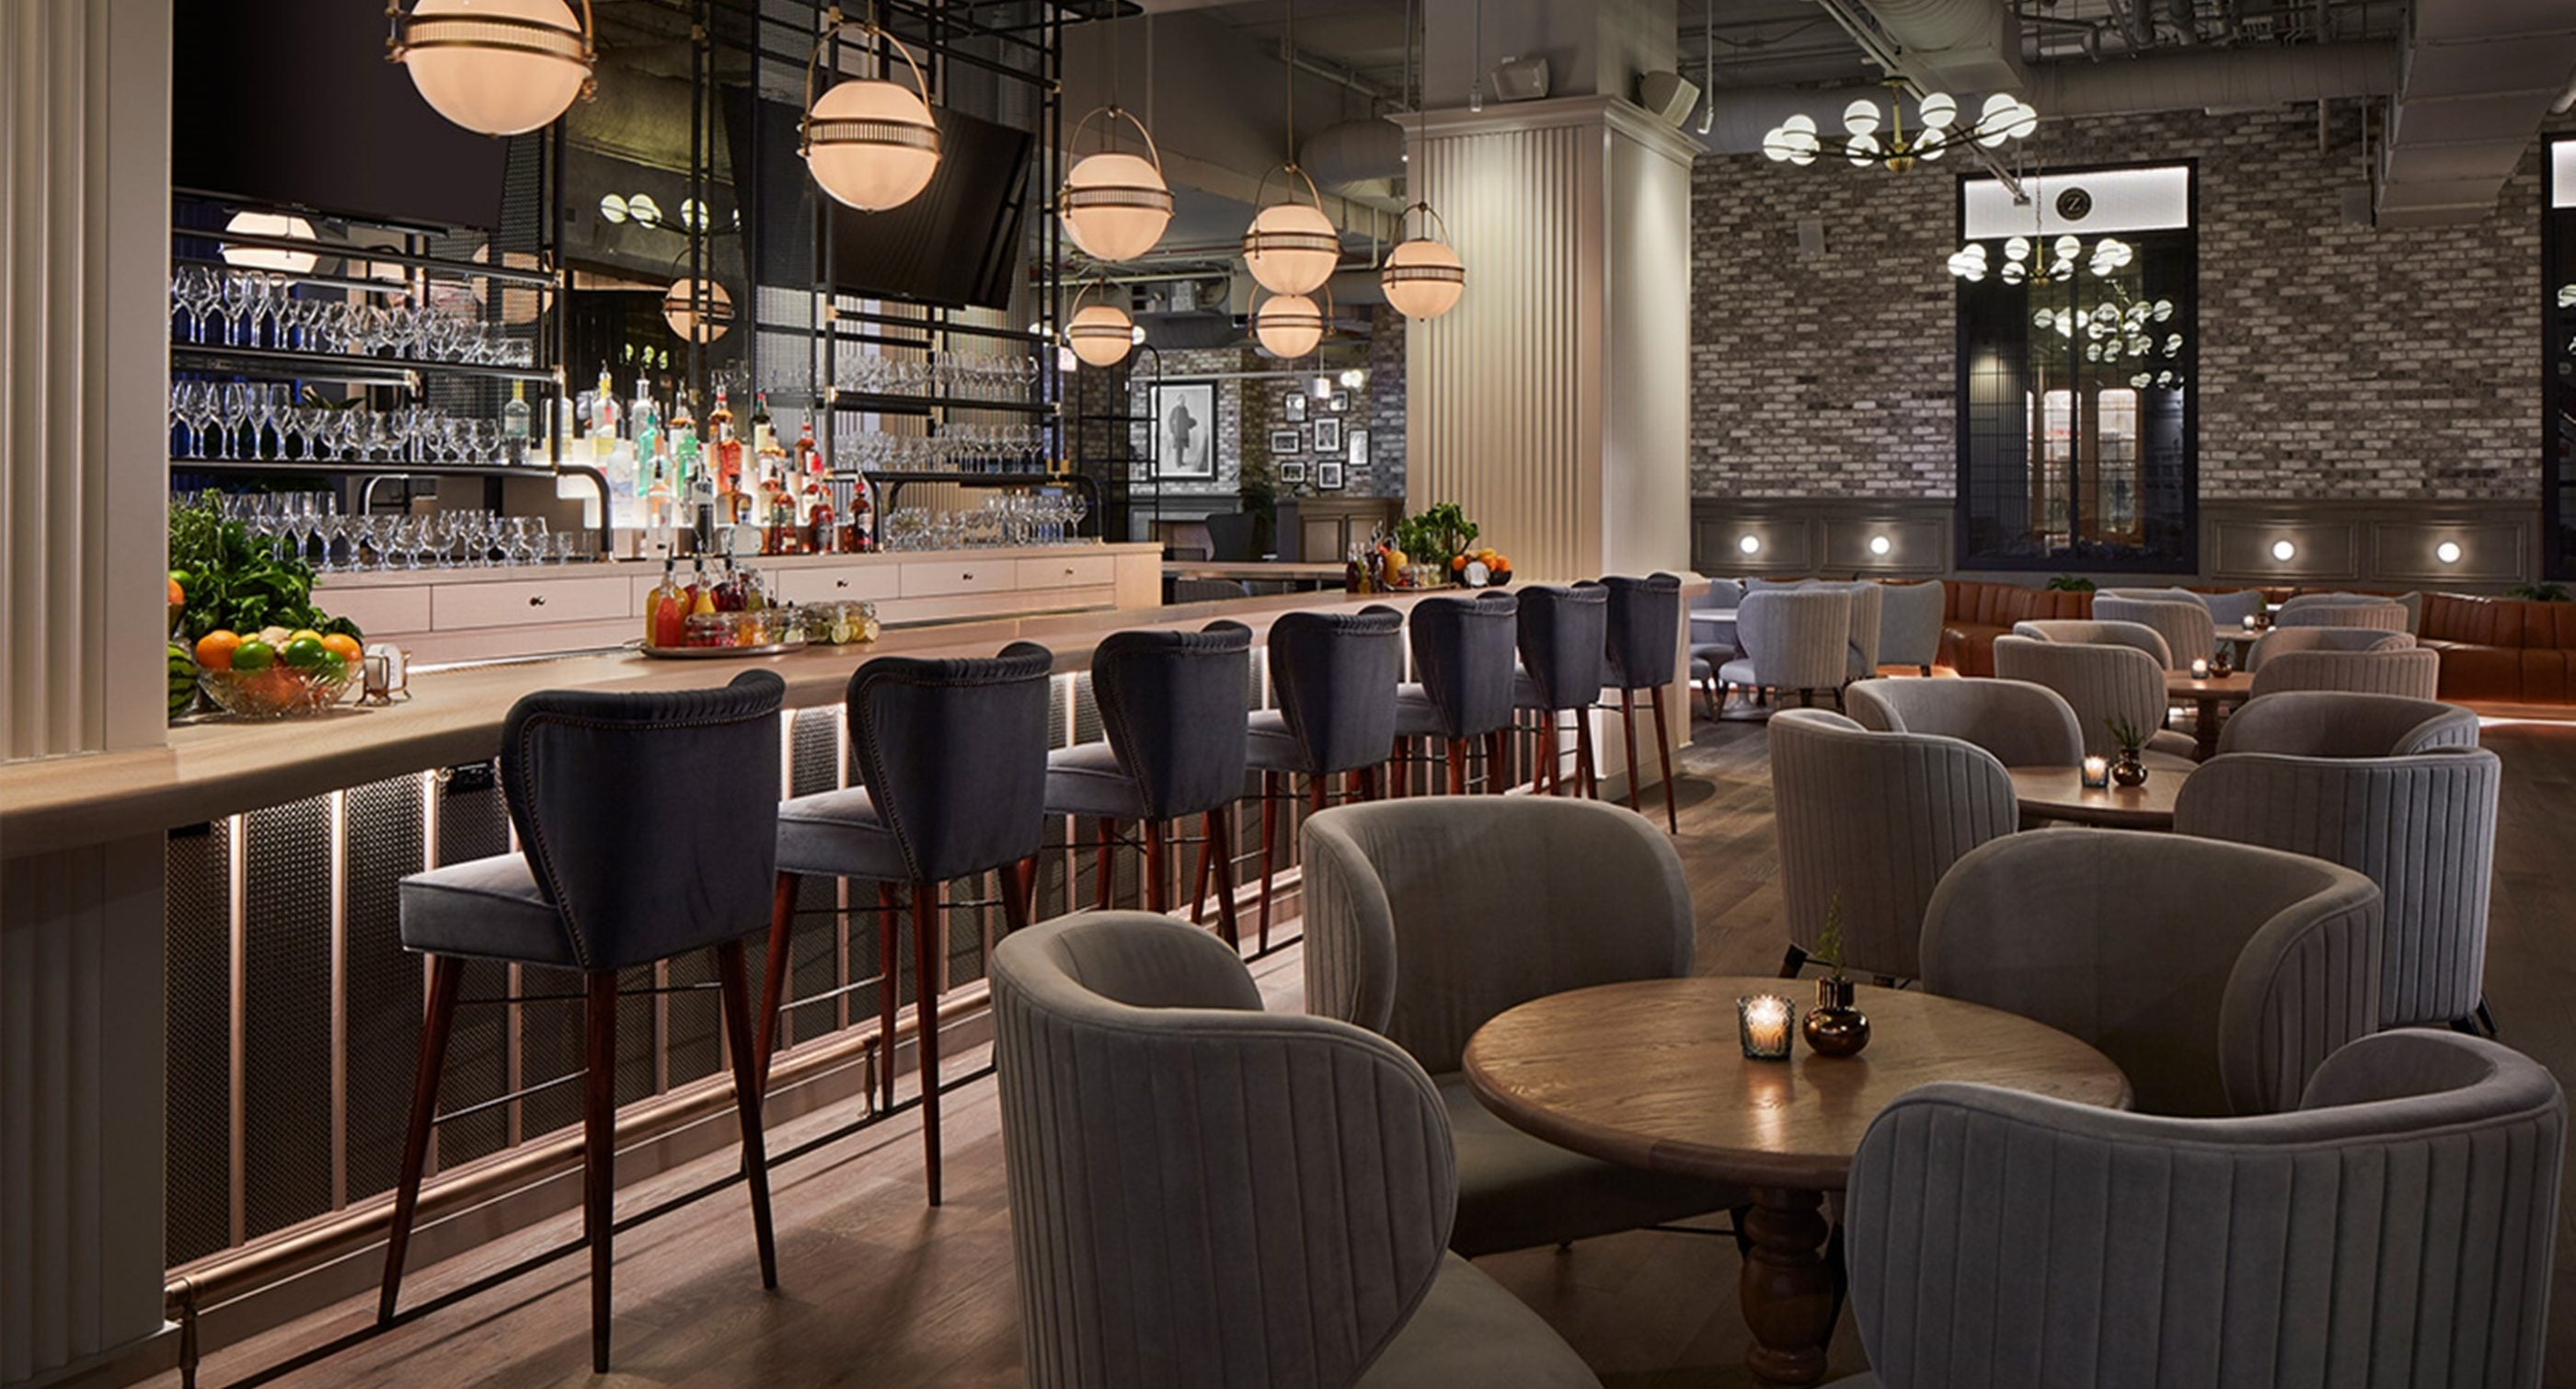 Visconti Mid-Century Modern Bar Chair in grey cotton velvet in a restaurant project